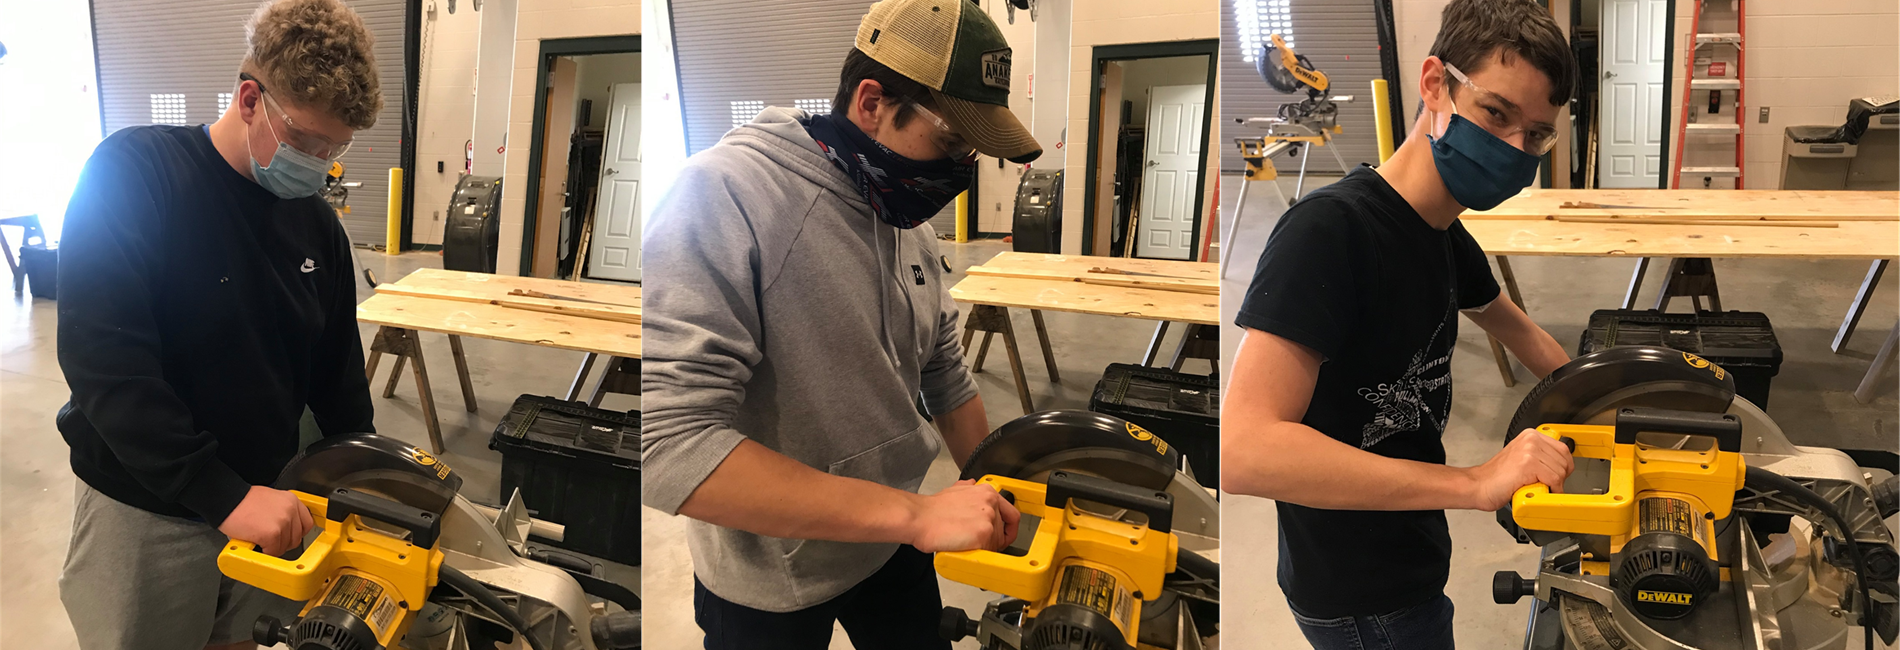 SoKY ECCA Carpentry students work in the shop and gain hands-on experience.